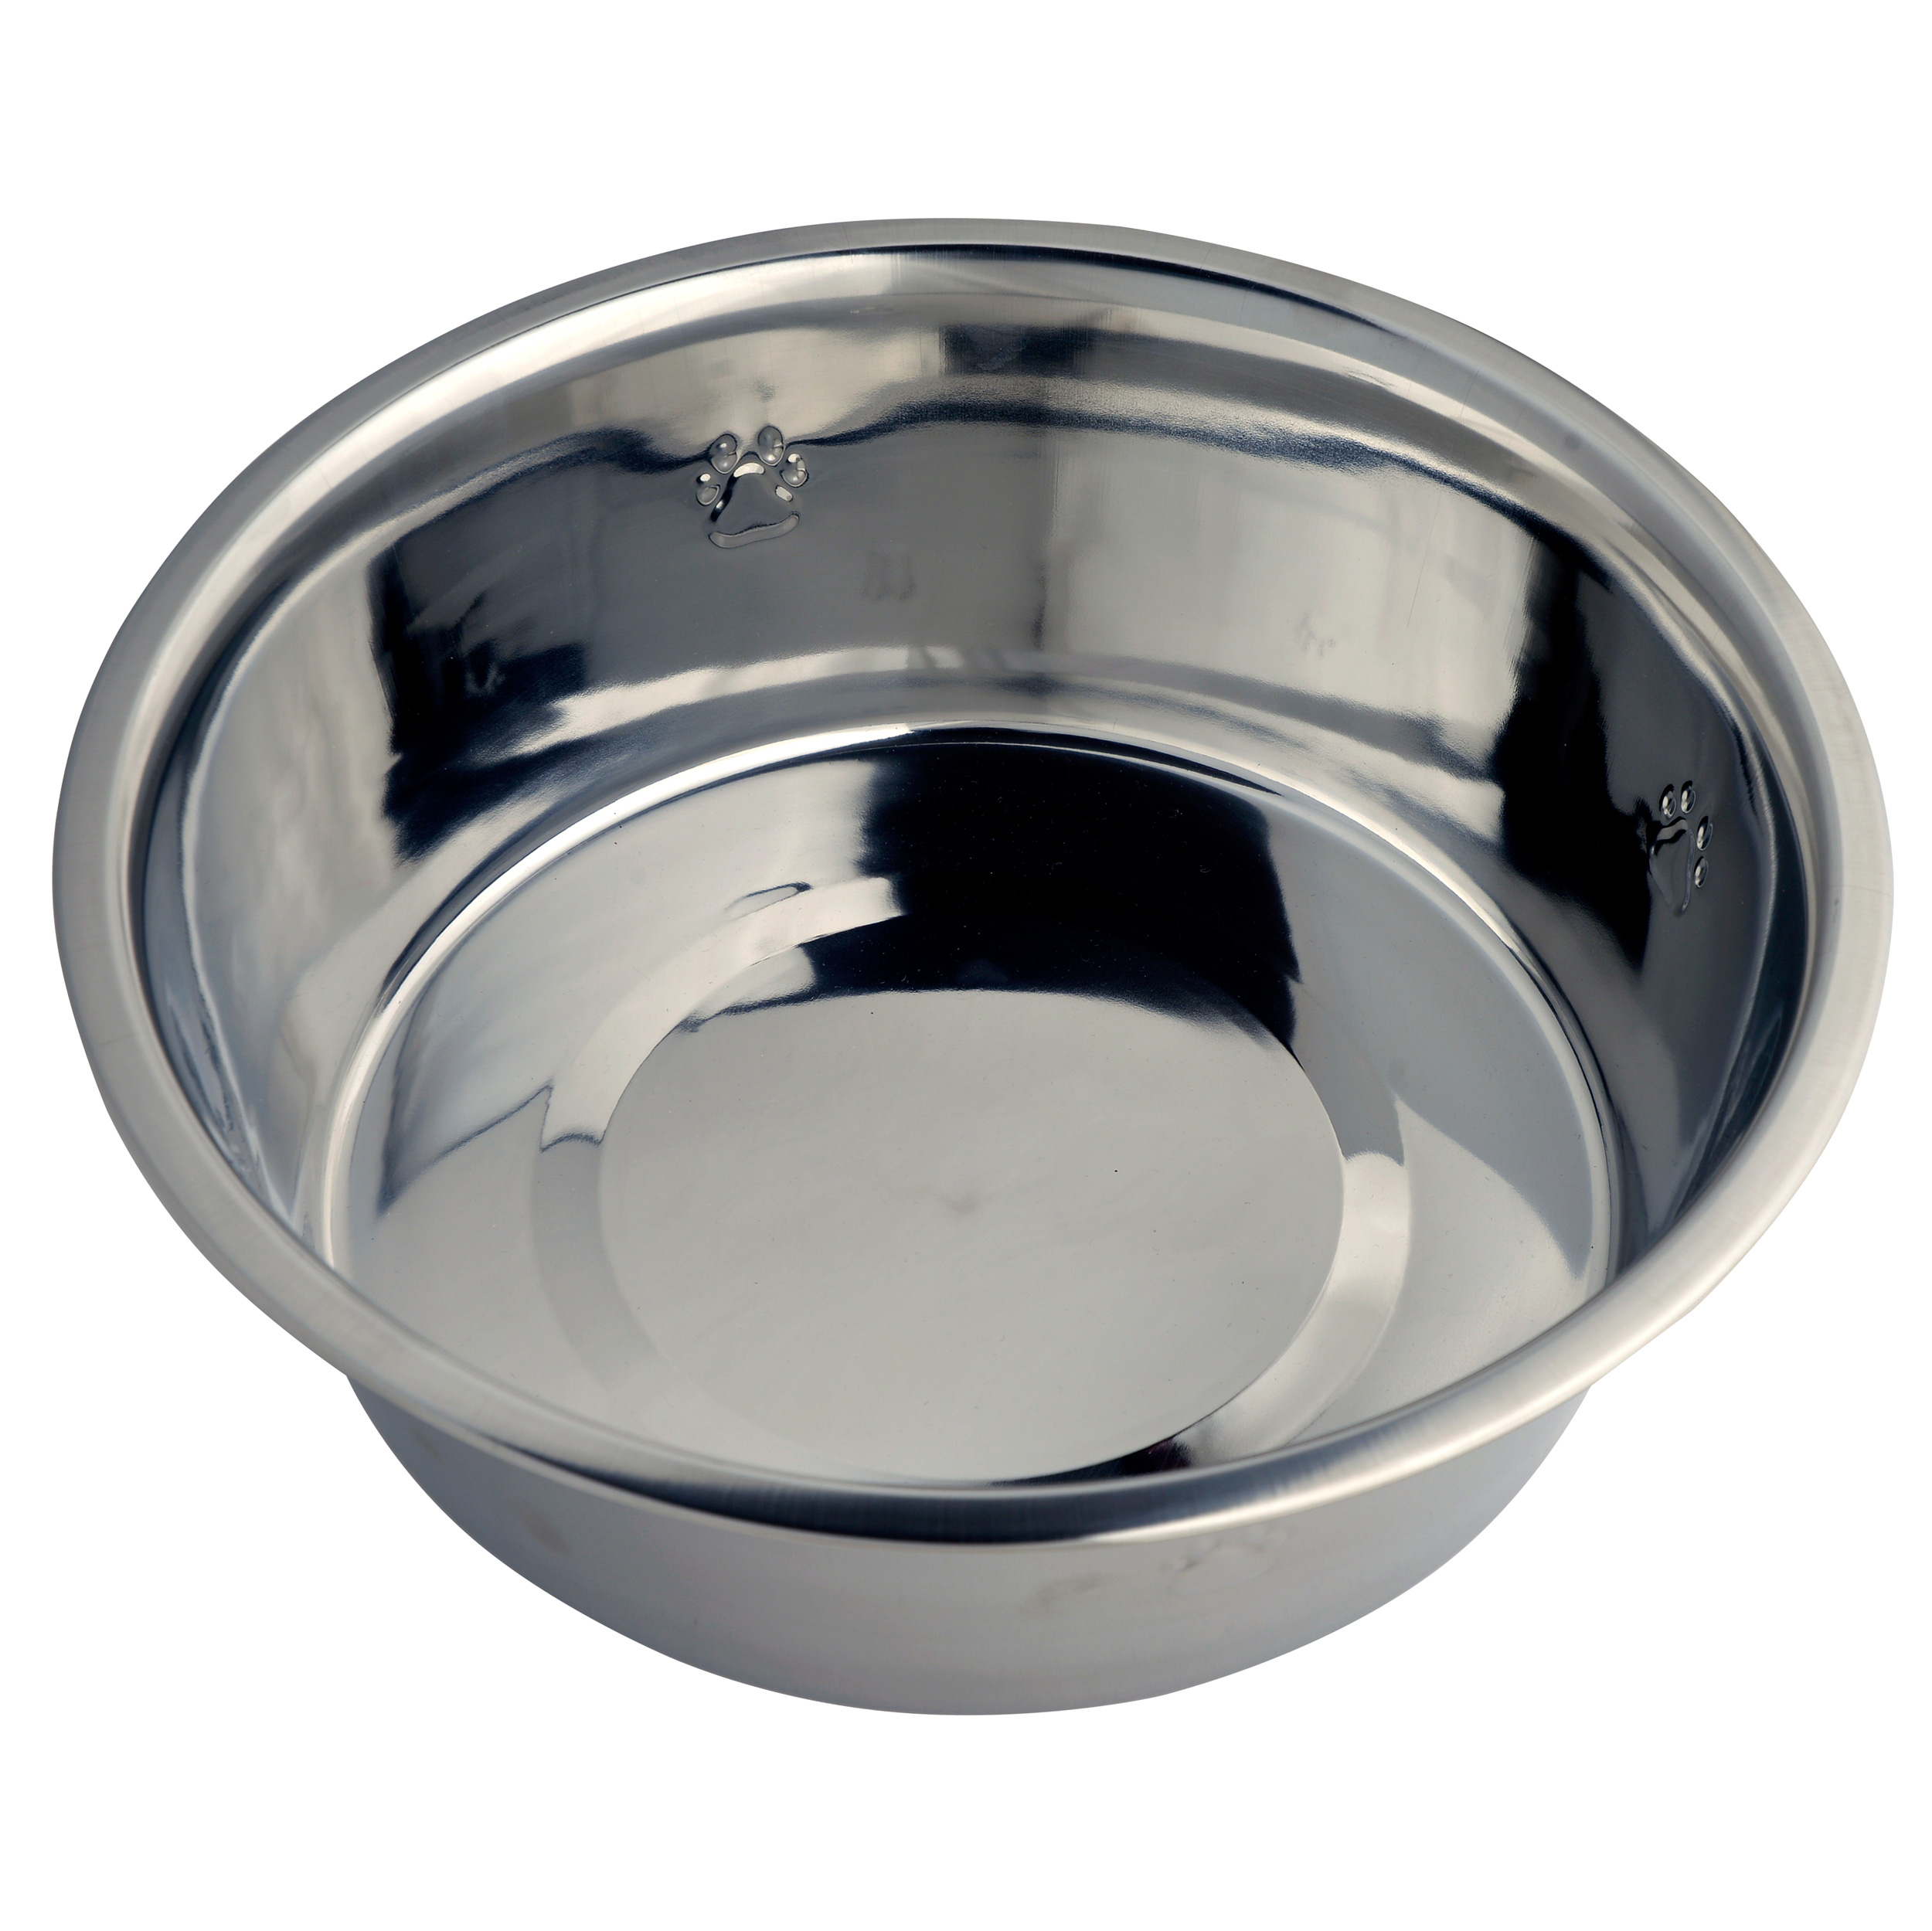 Vibrant Life Stainless Steel Dog Bowl with Paws, Medium